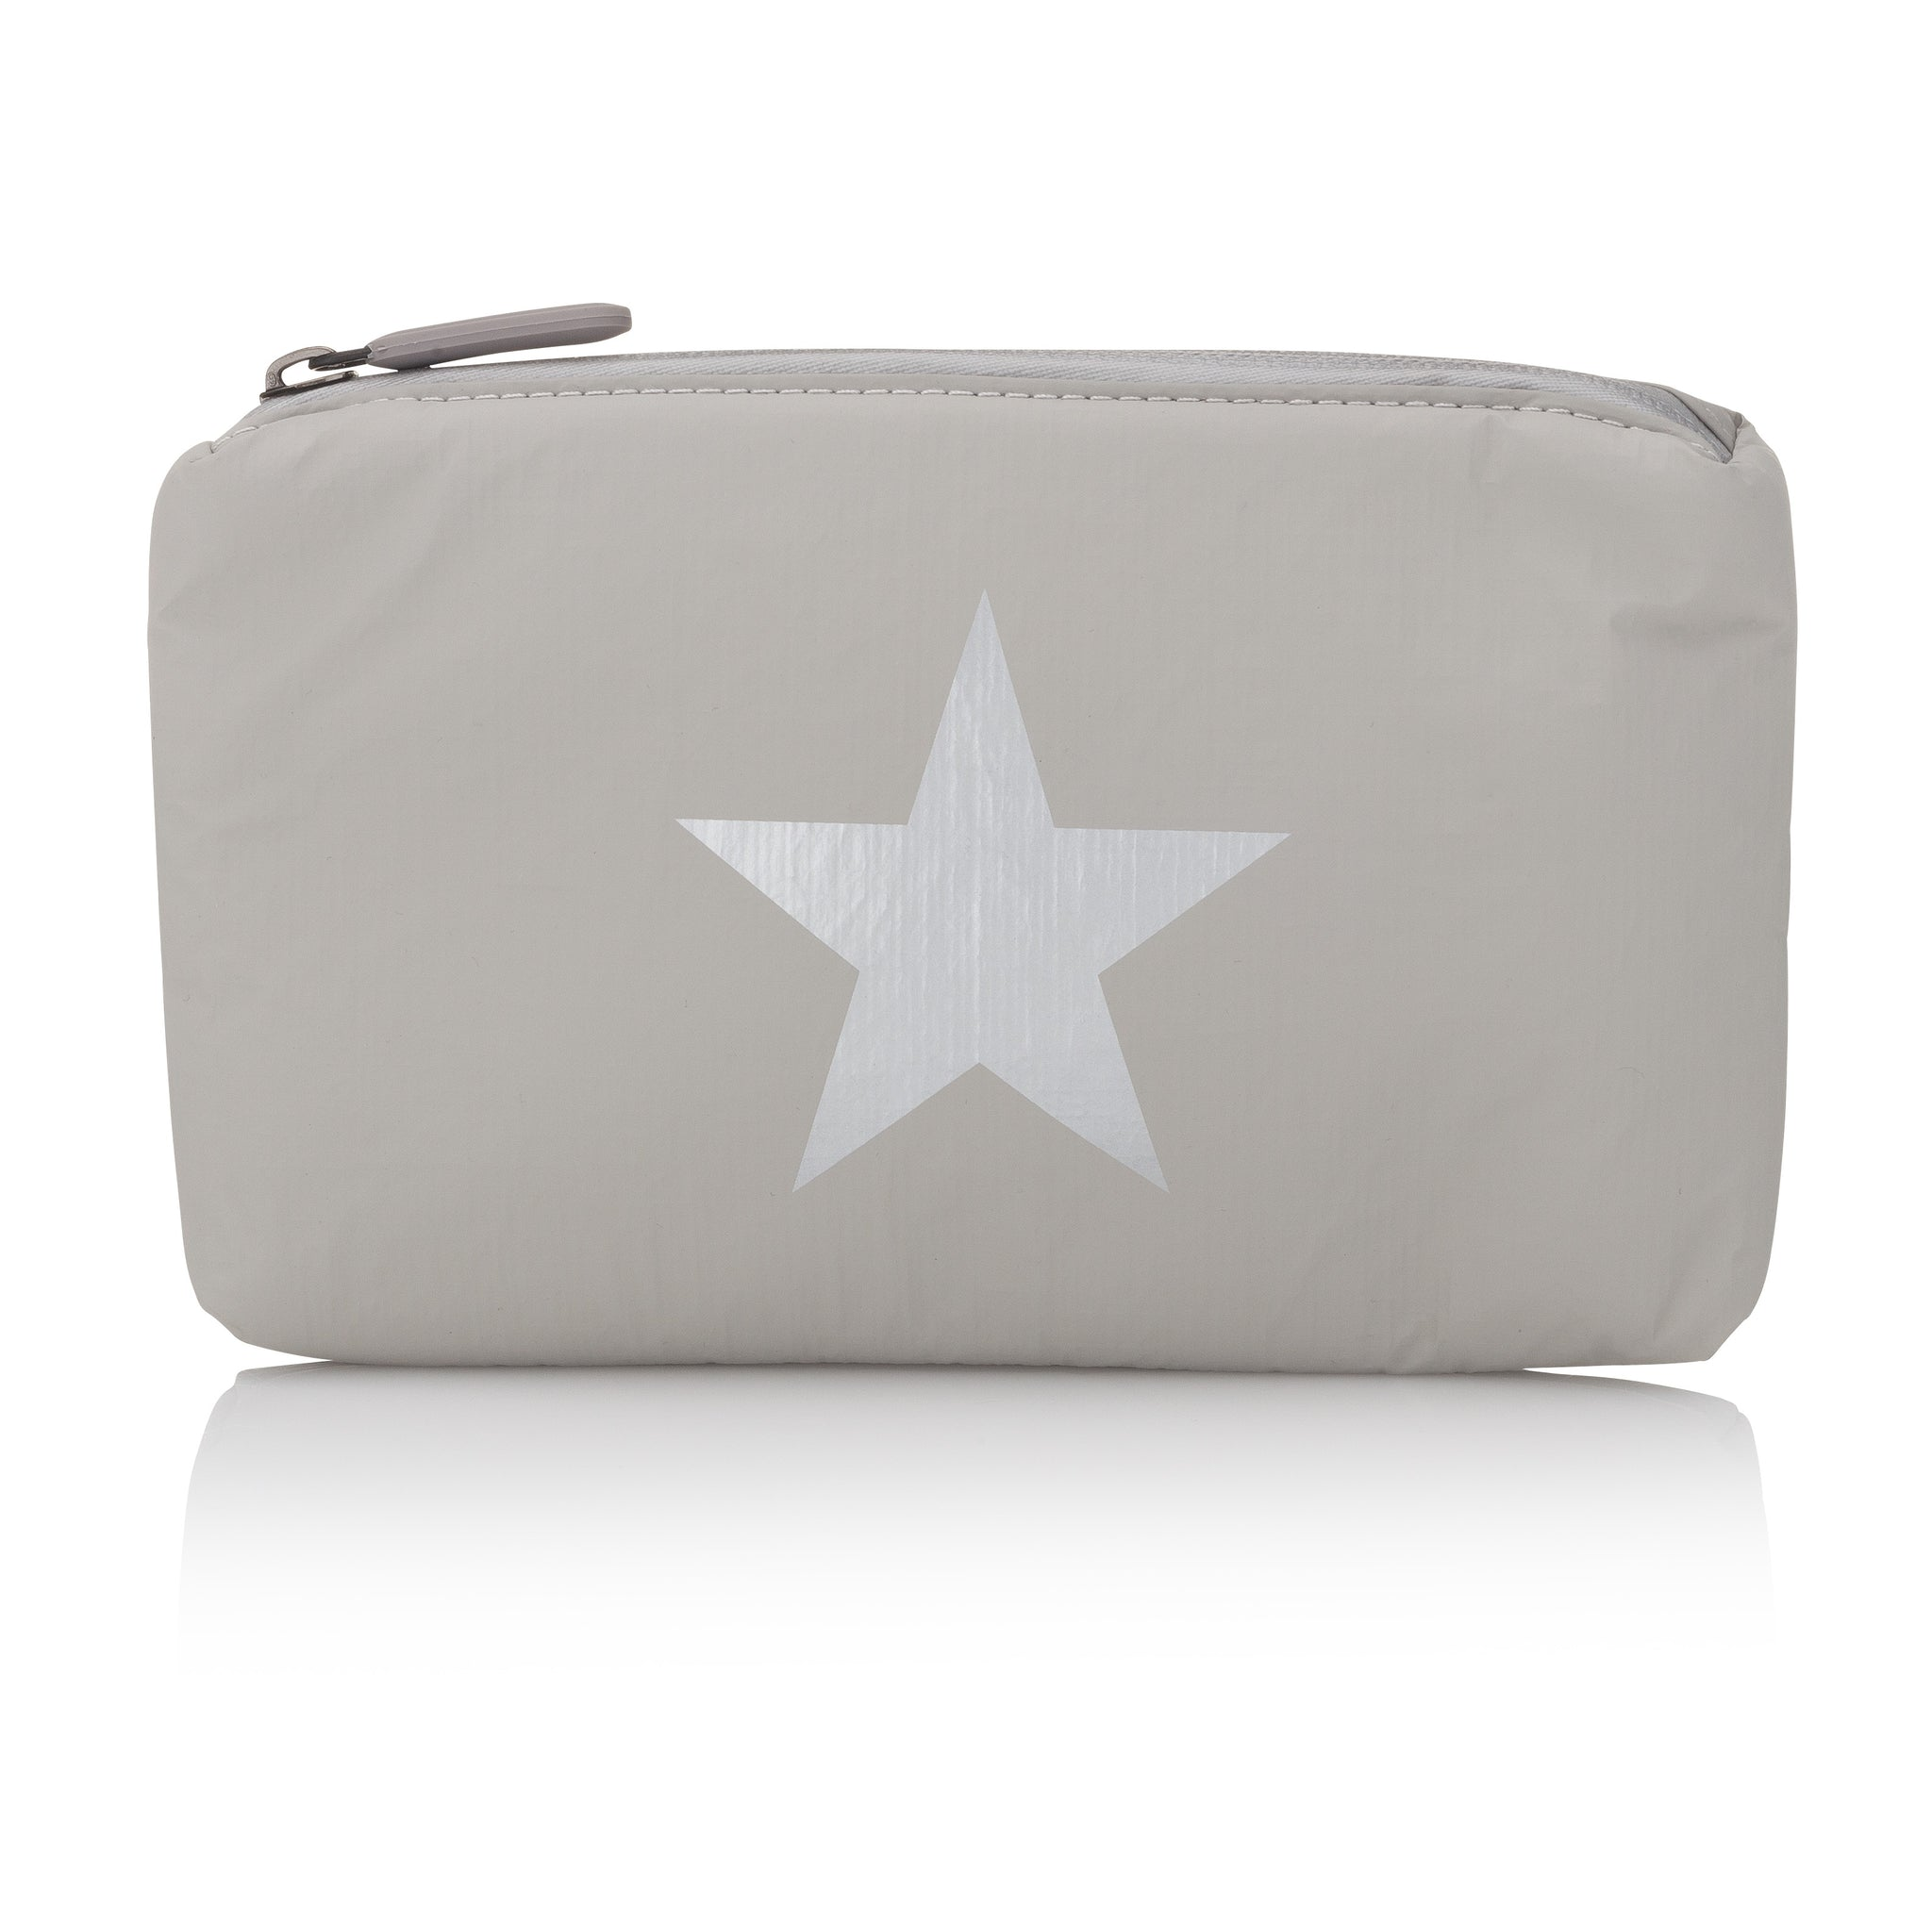 Mini Pack - Earth Gray with Silver Star